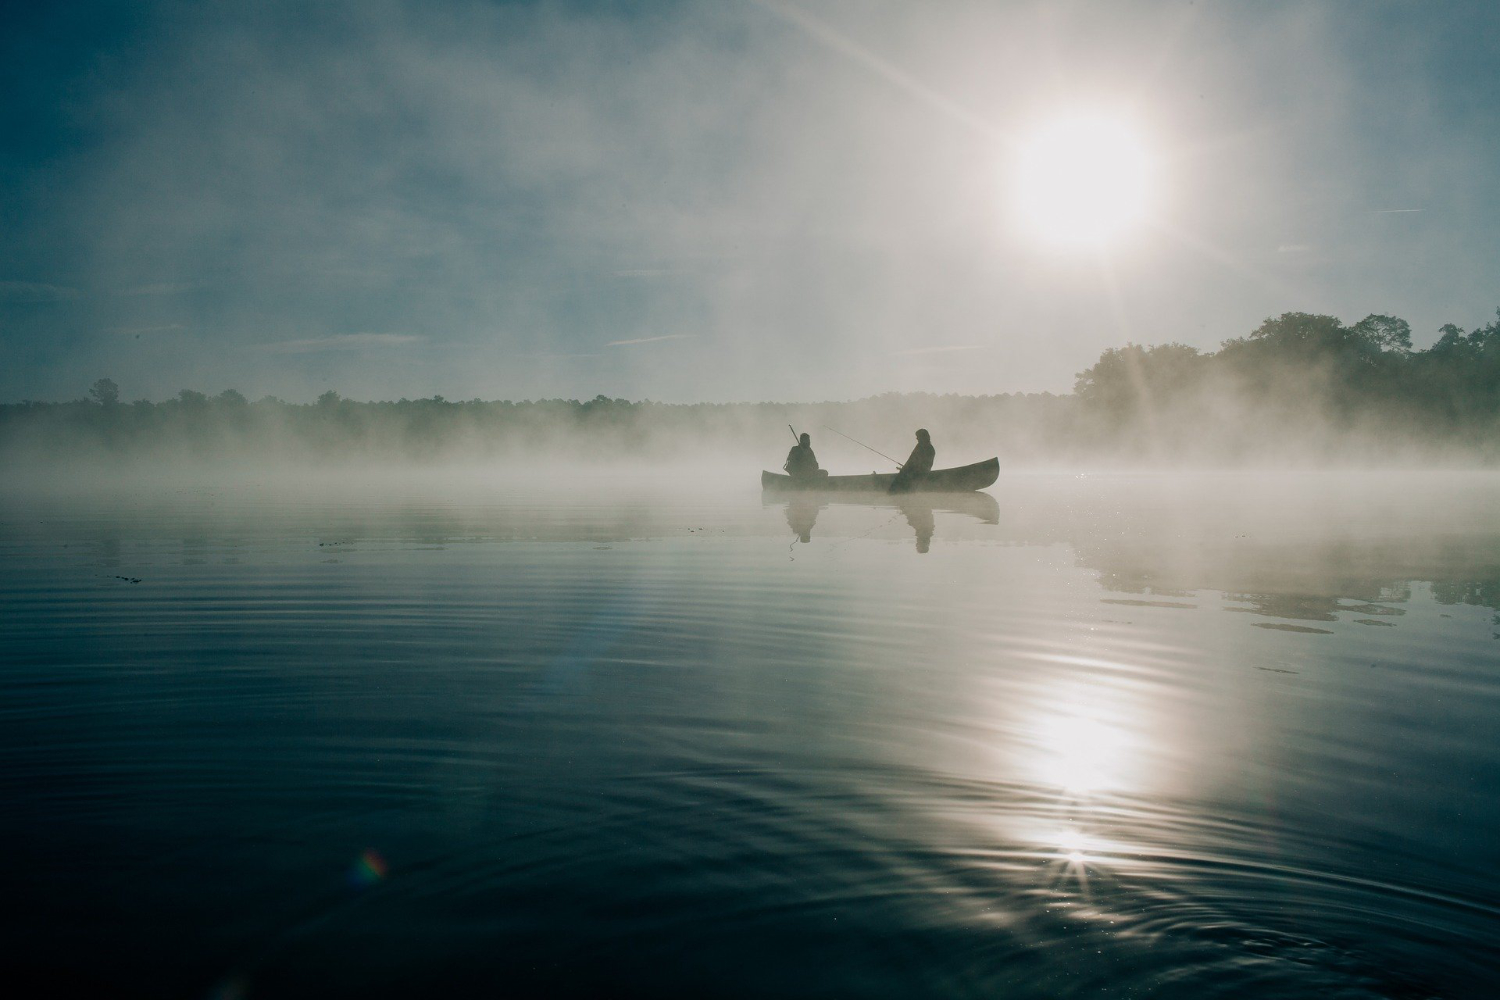 fishing in the fog on a kayak